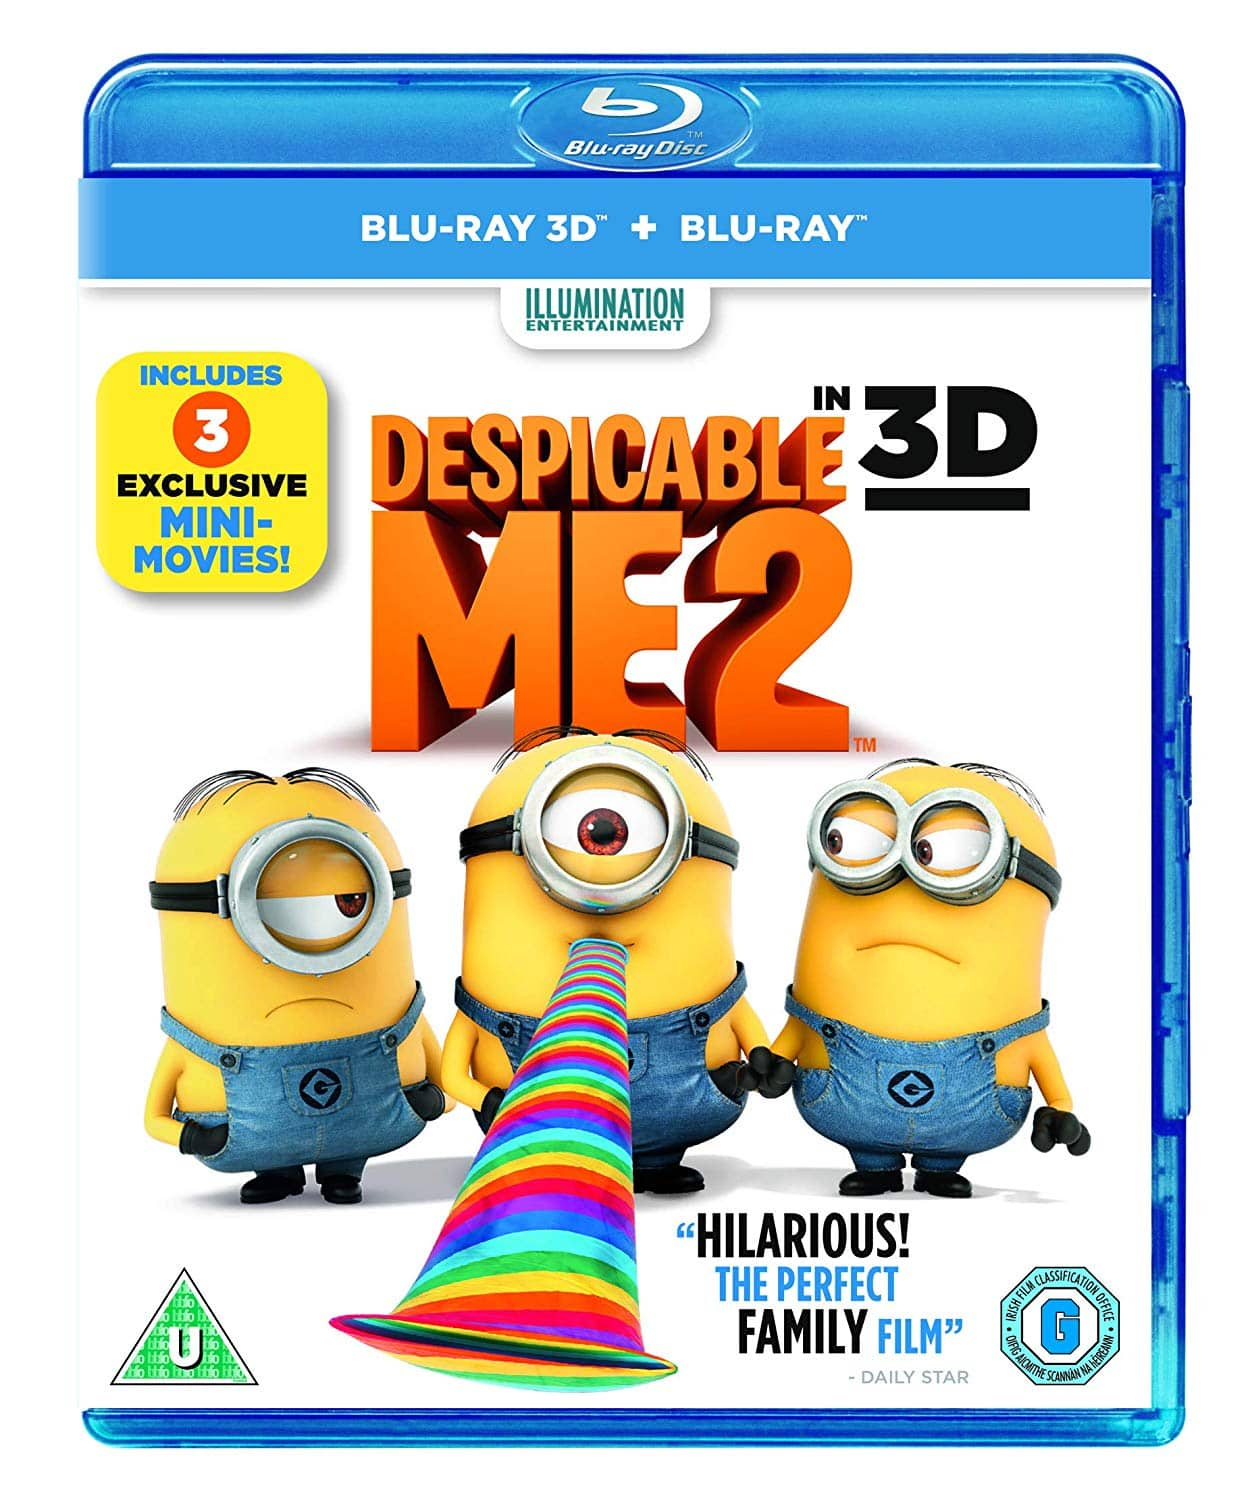 3D: Despicable Me 2 (Blu-ray 3D + Blu-ray) $8 85, Teenage